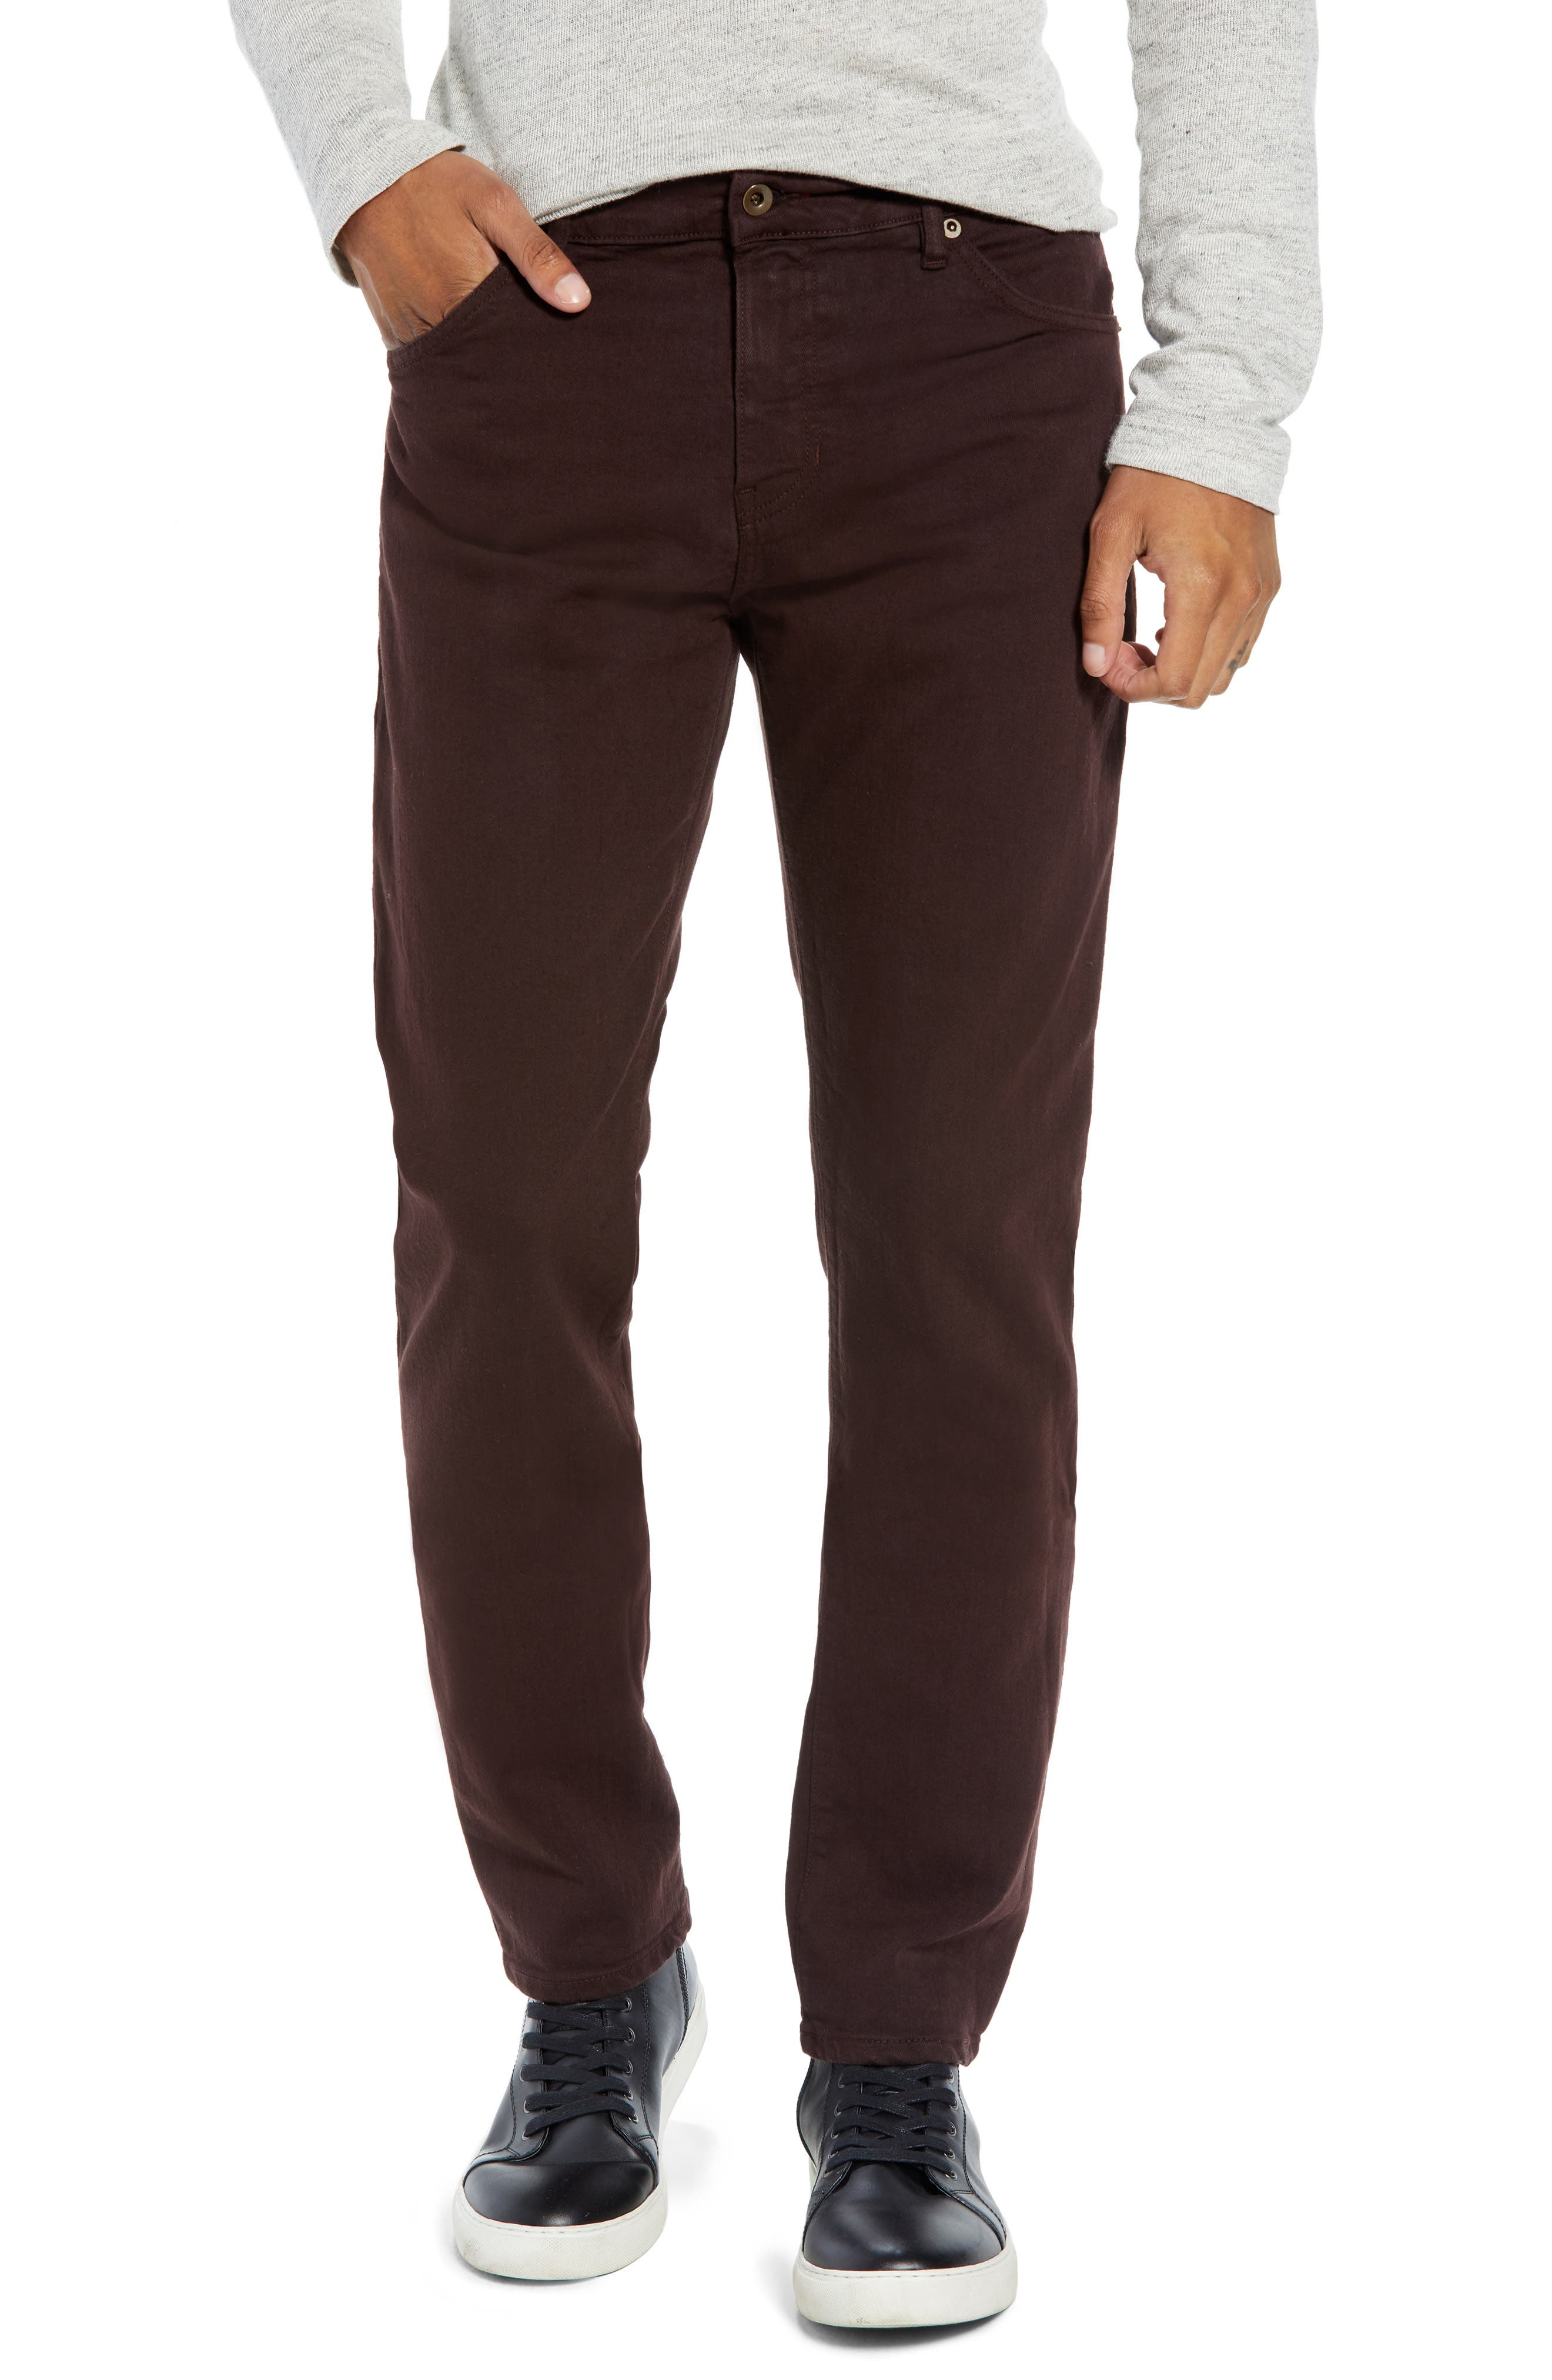 Raleight Denim Martin Skinny Fit Jeans,                             Main thumbnail 1, color,                             CURRANT